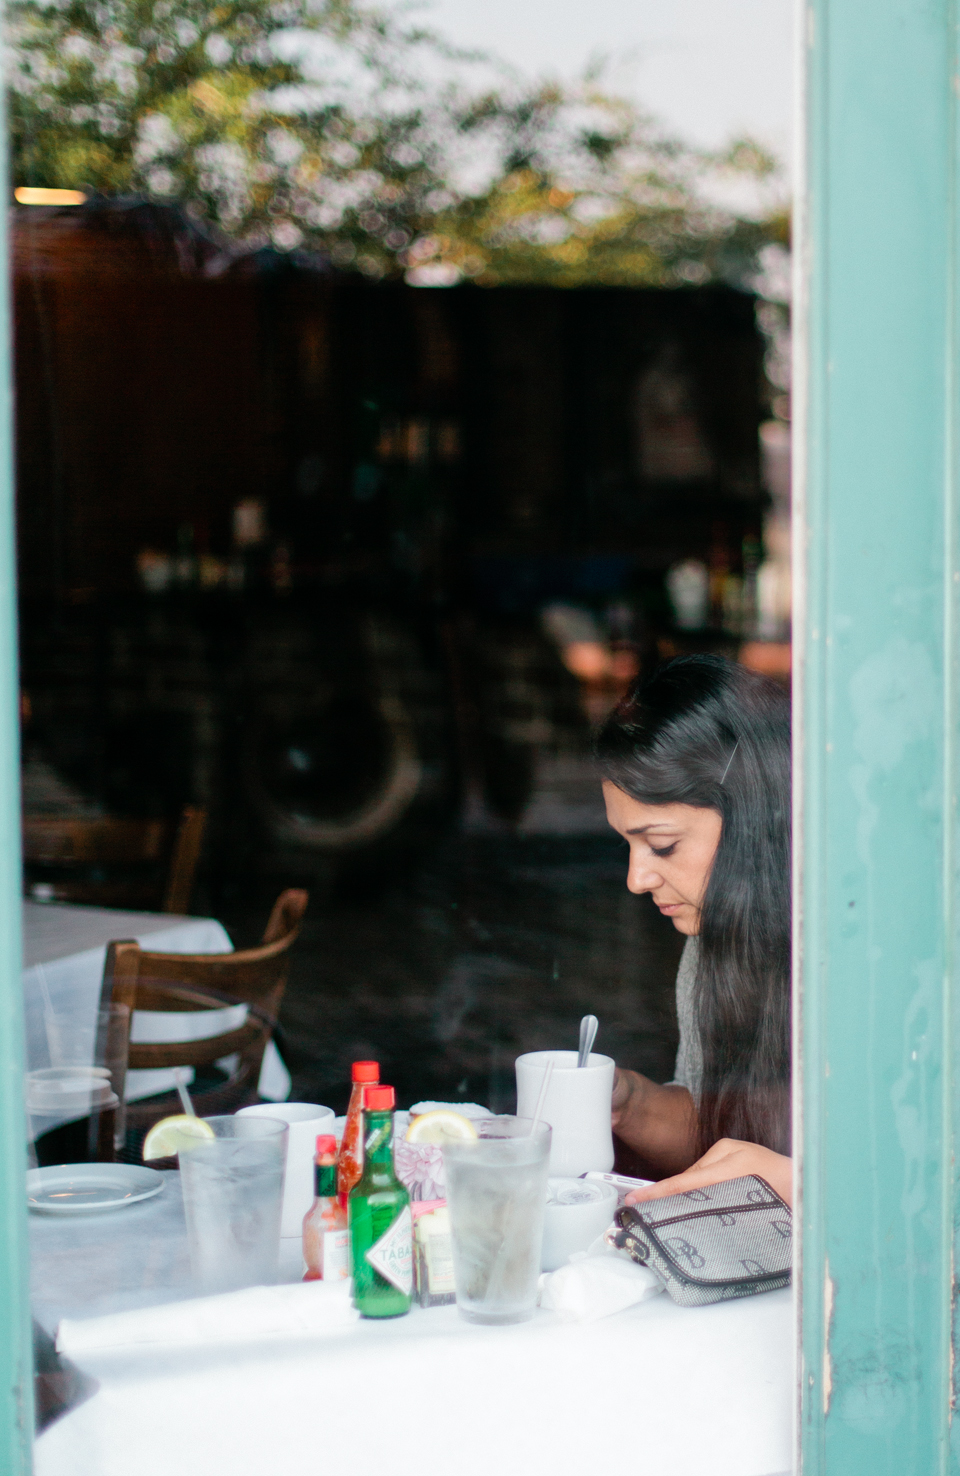 Image of Rana of Roohi Photography through a cafe window in historic downtown Savannah, Georgia.